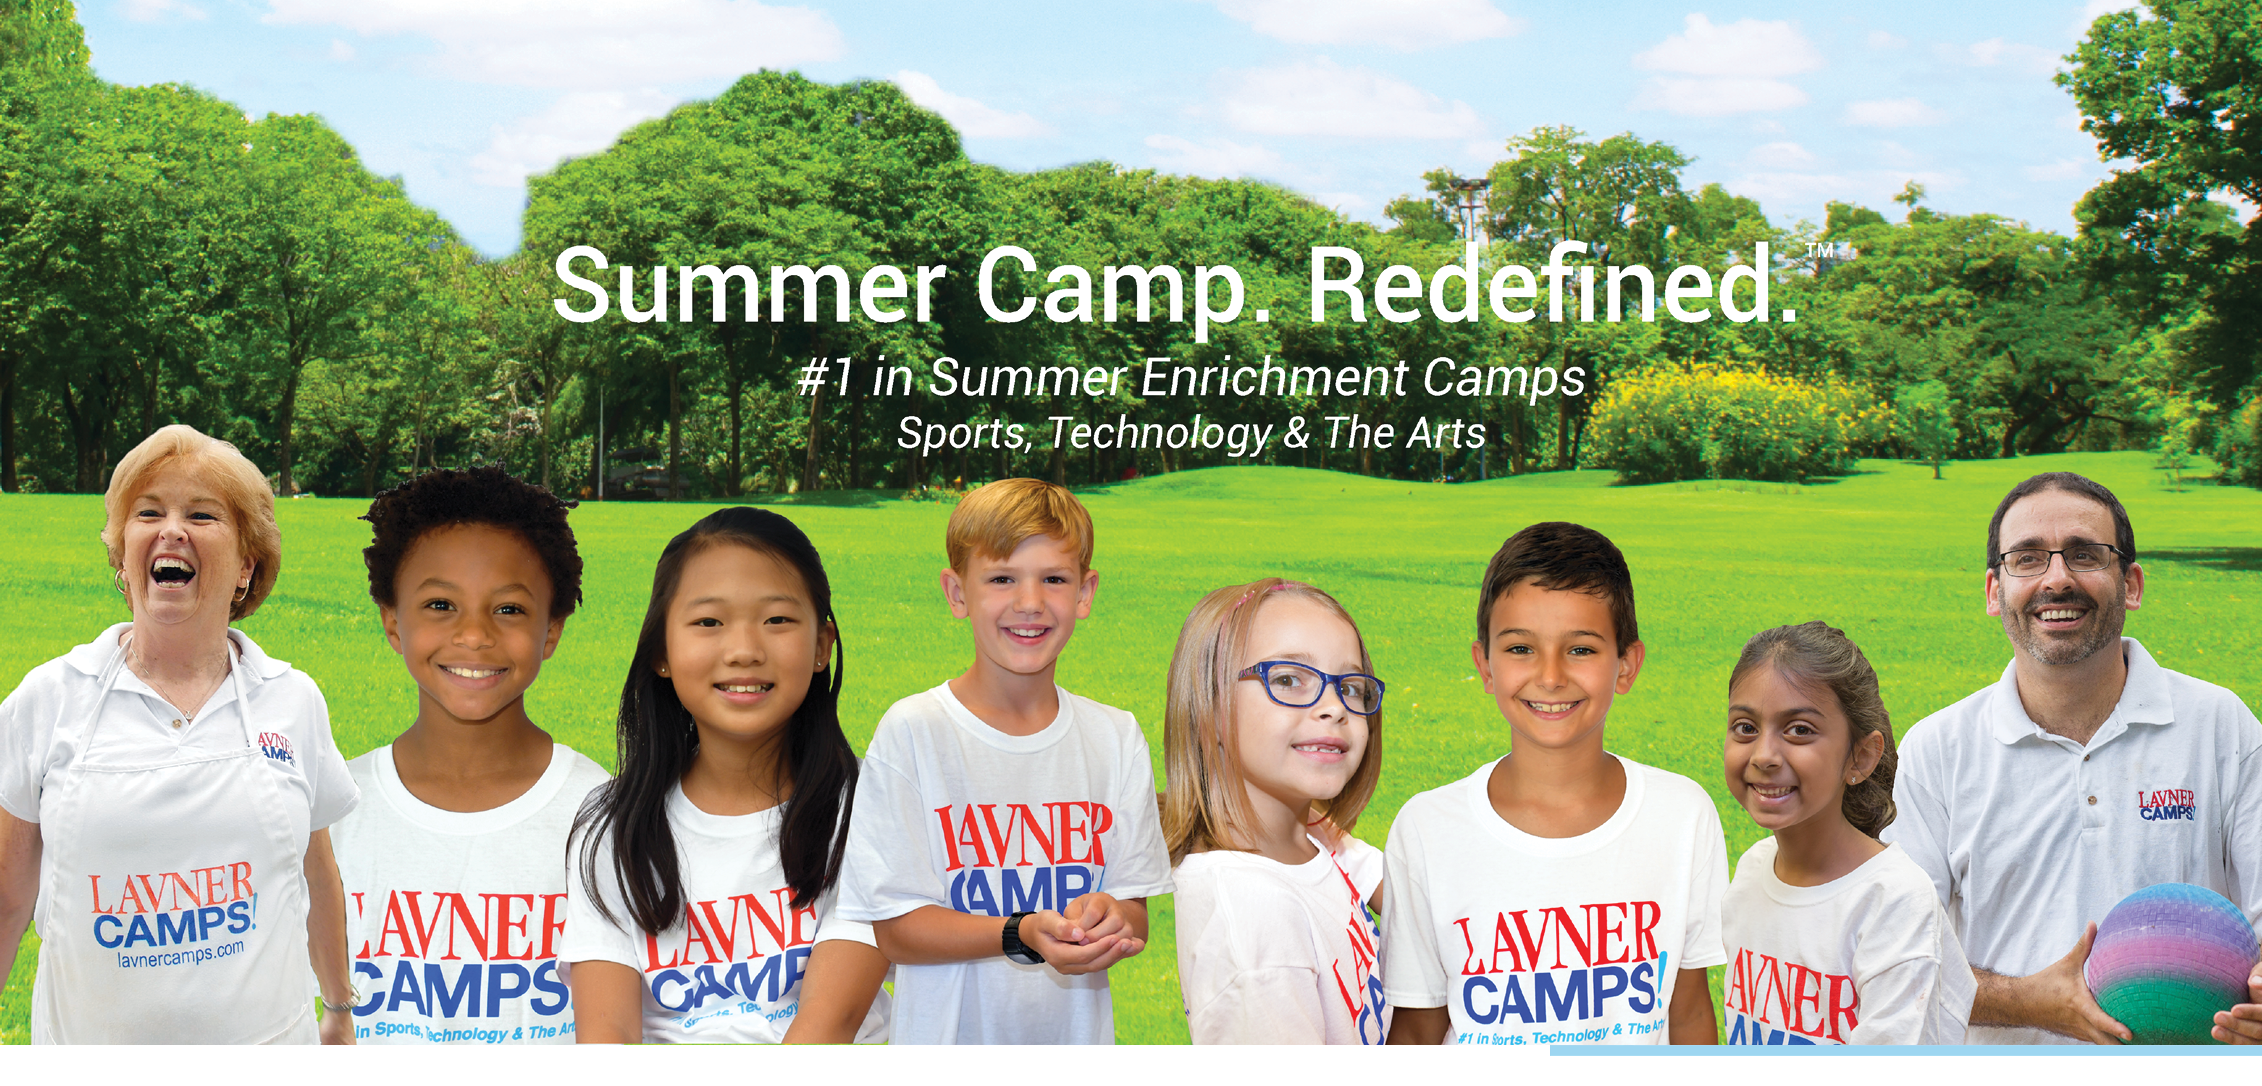 GMA Hosts Lavner Camps! 35+ Camps in Sports, Technology & The Arts for Ages 6-15